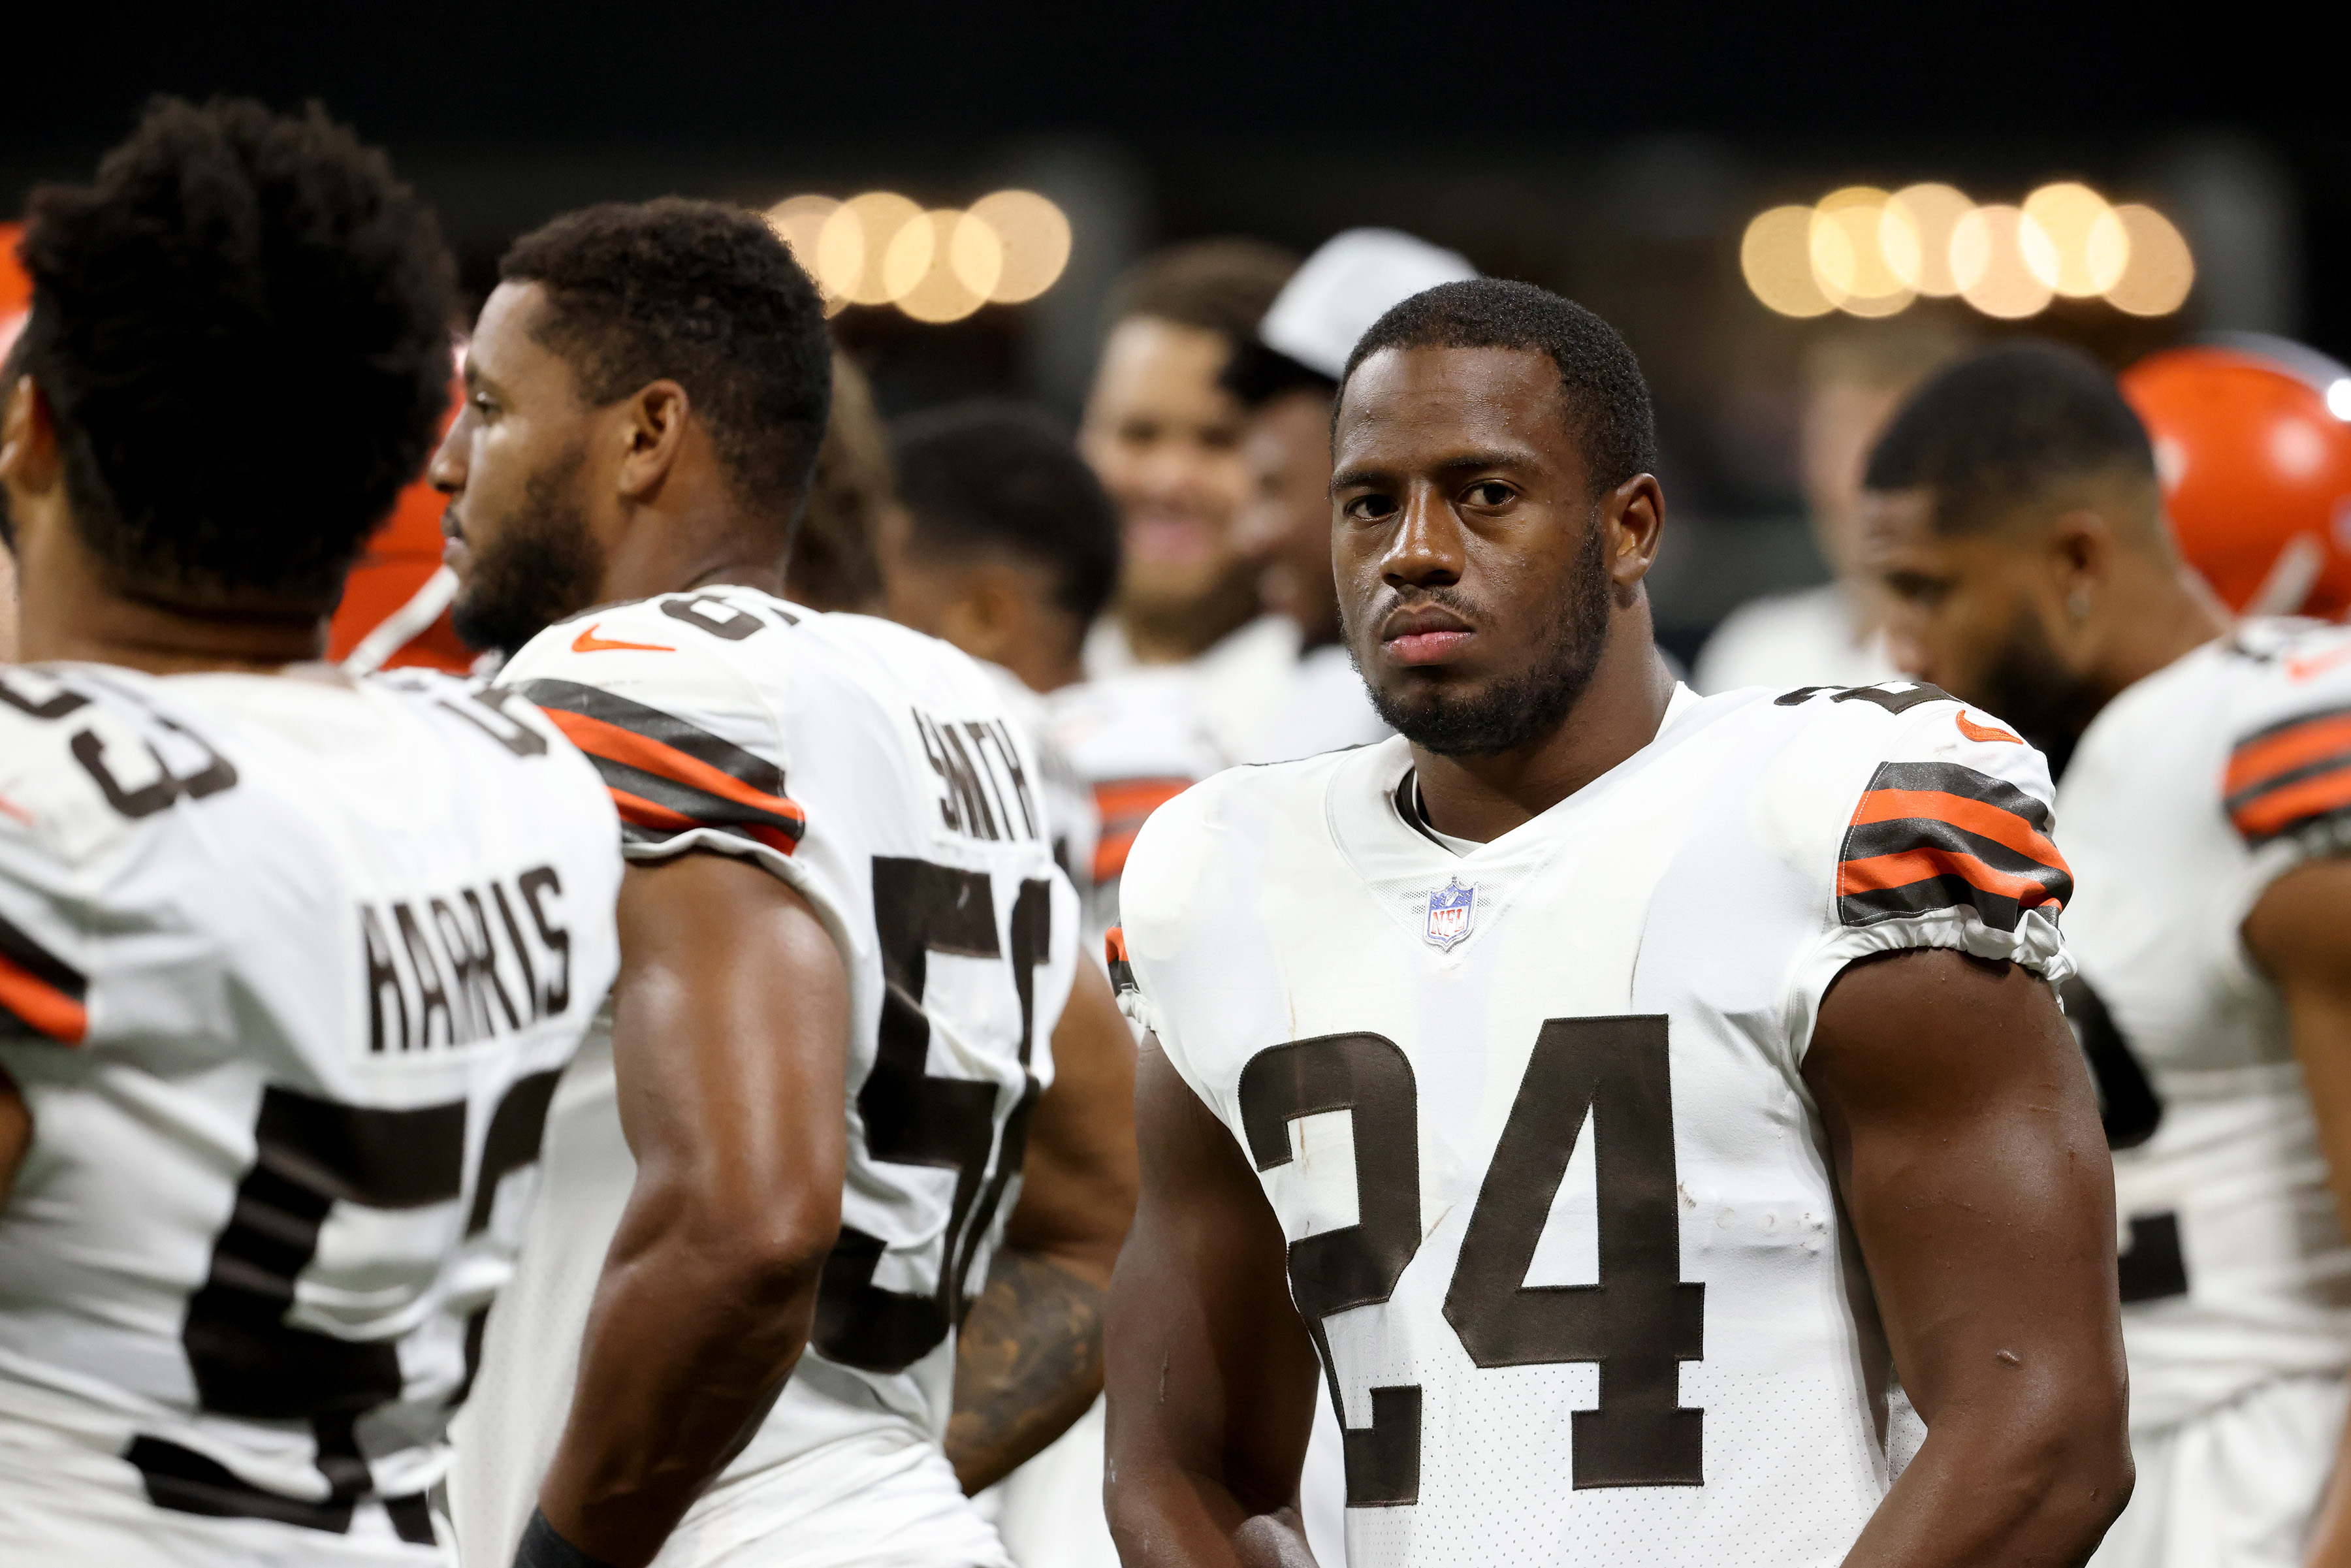 Cleveland Browns running back Nick Chubb (24) is shown on the sideline during their game against the Atlanta Falcons at Mercedes-Benz Stadium.